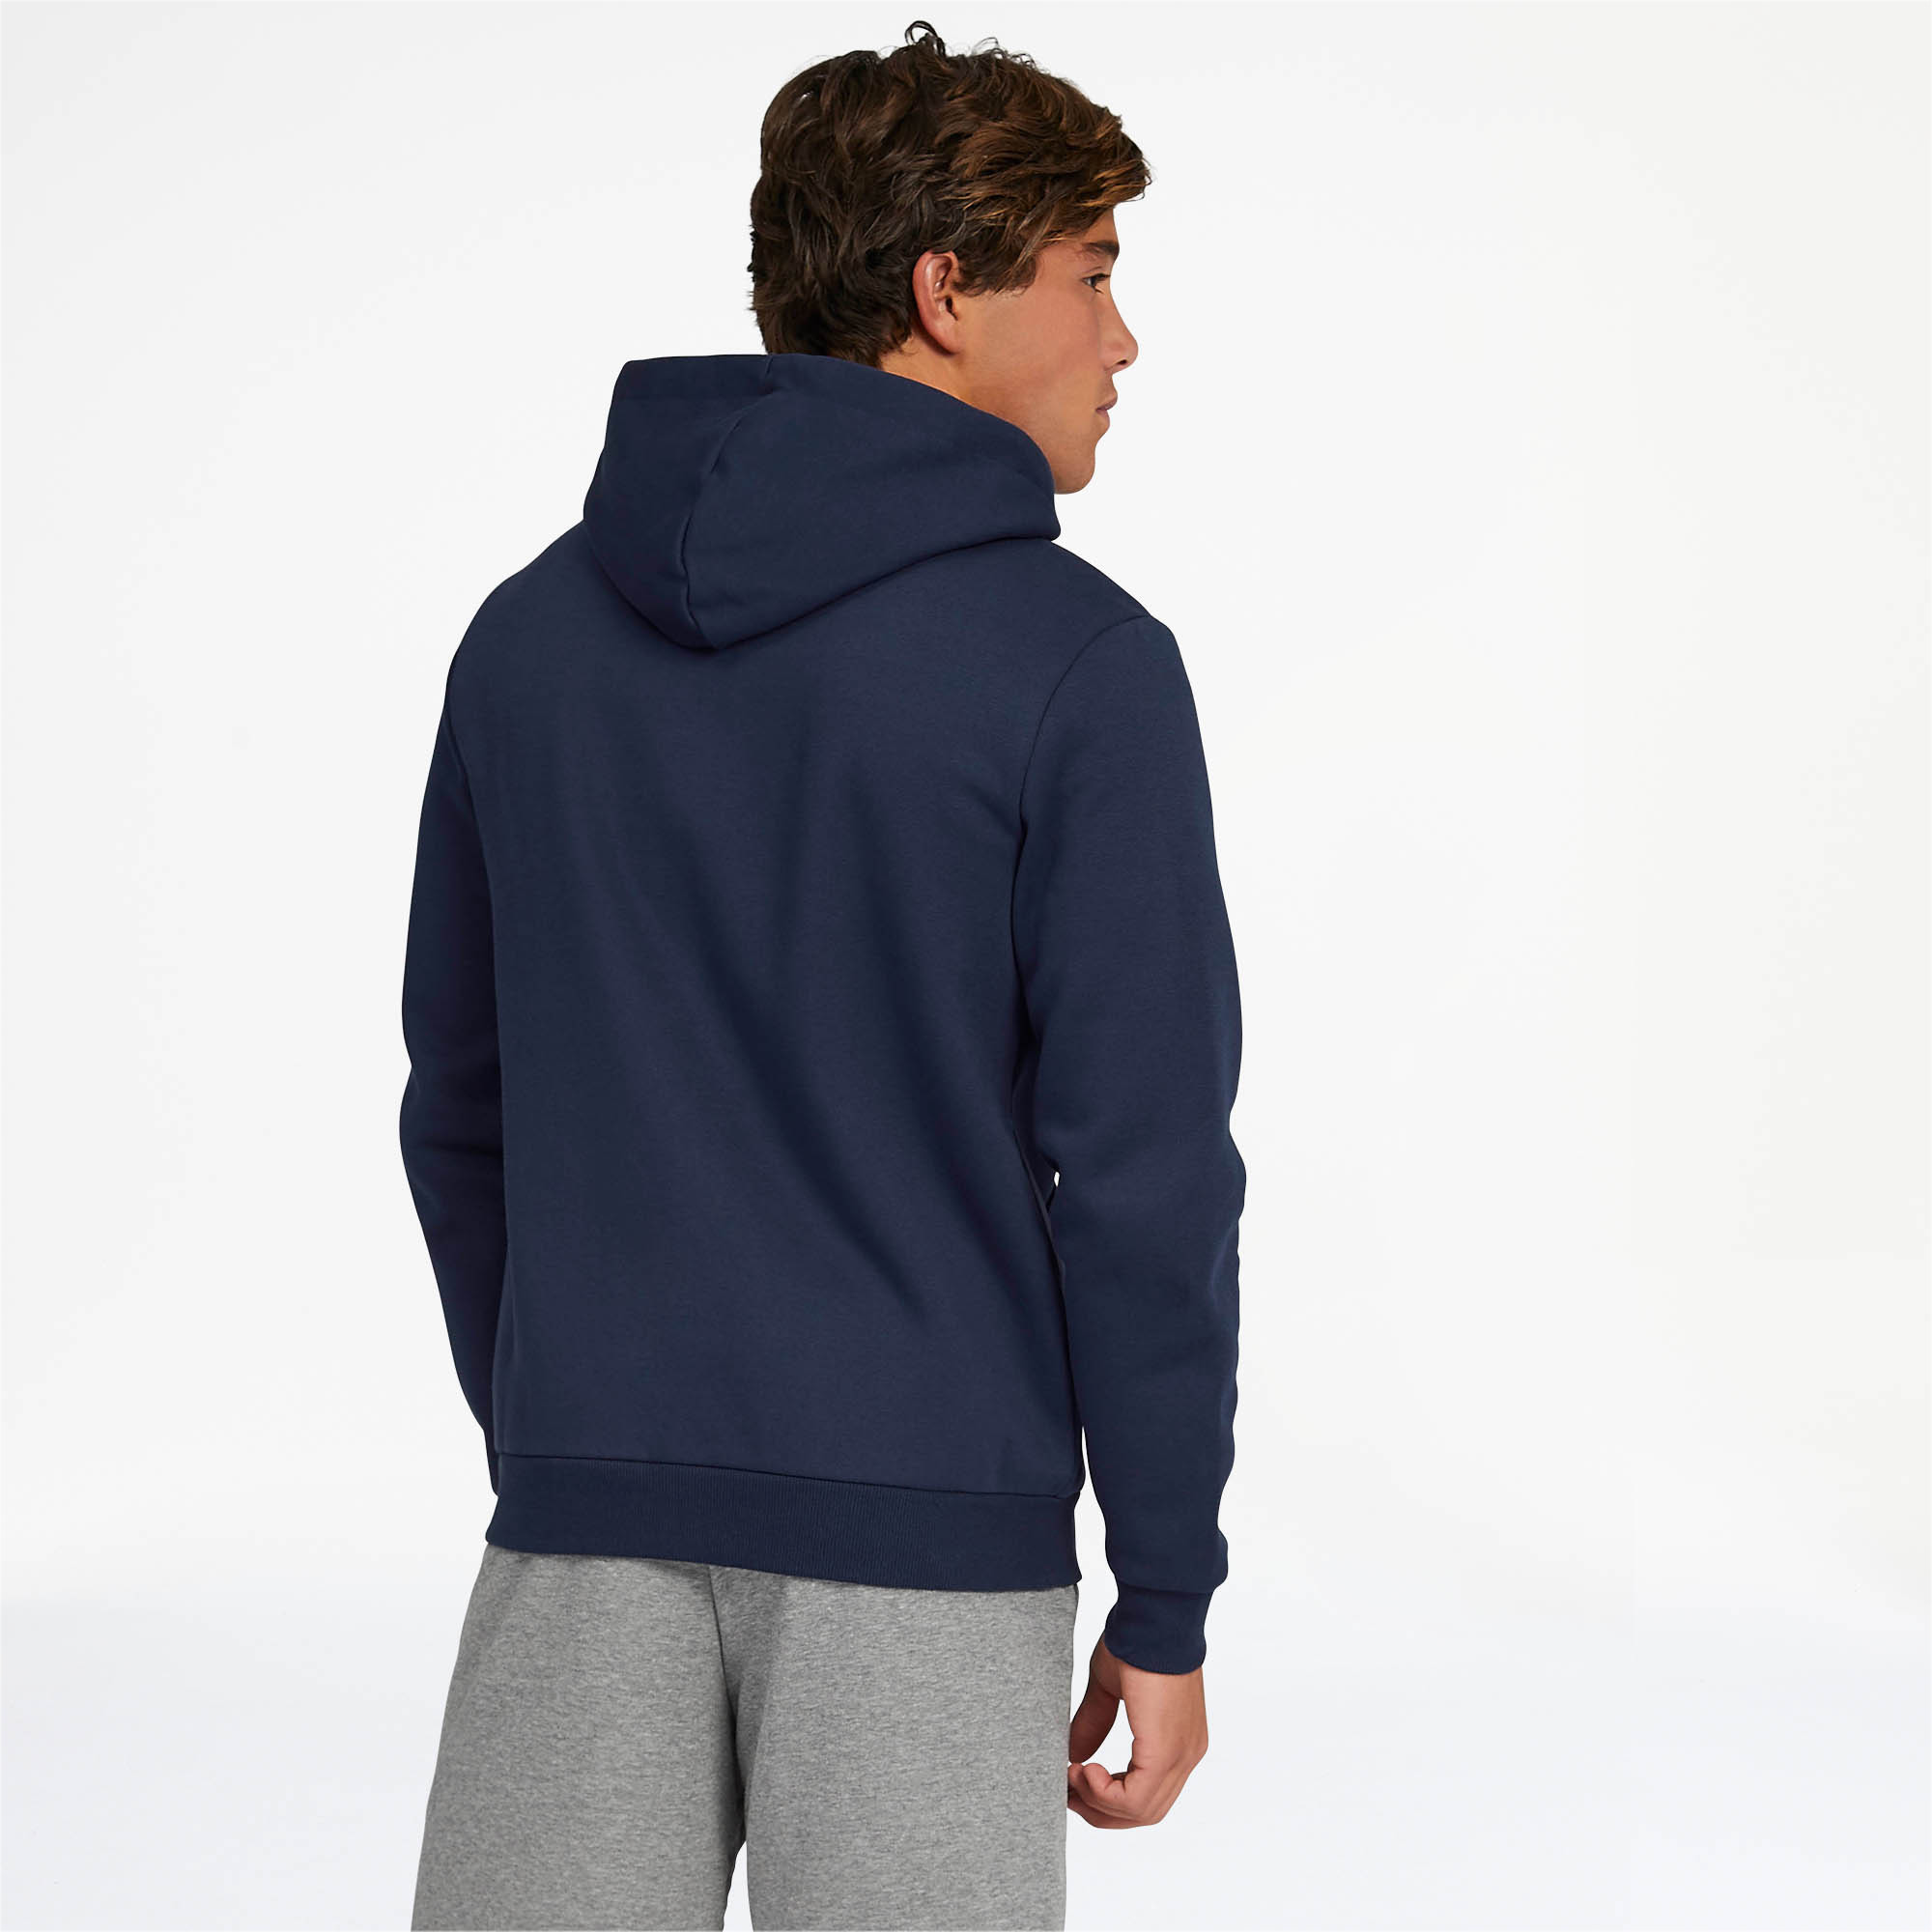 PUMA-Essentials-Men-039-s-Hooded-Fleece-Logo-Jacket-Men-Sweat-Basics thumbnail 15